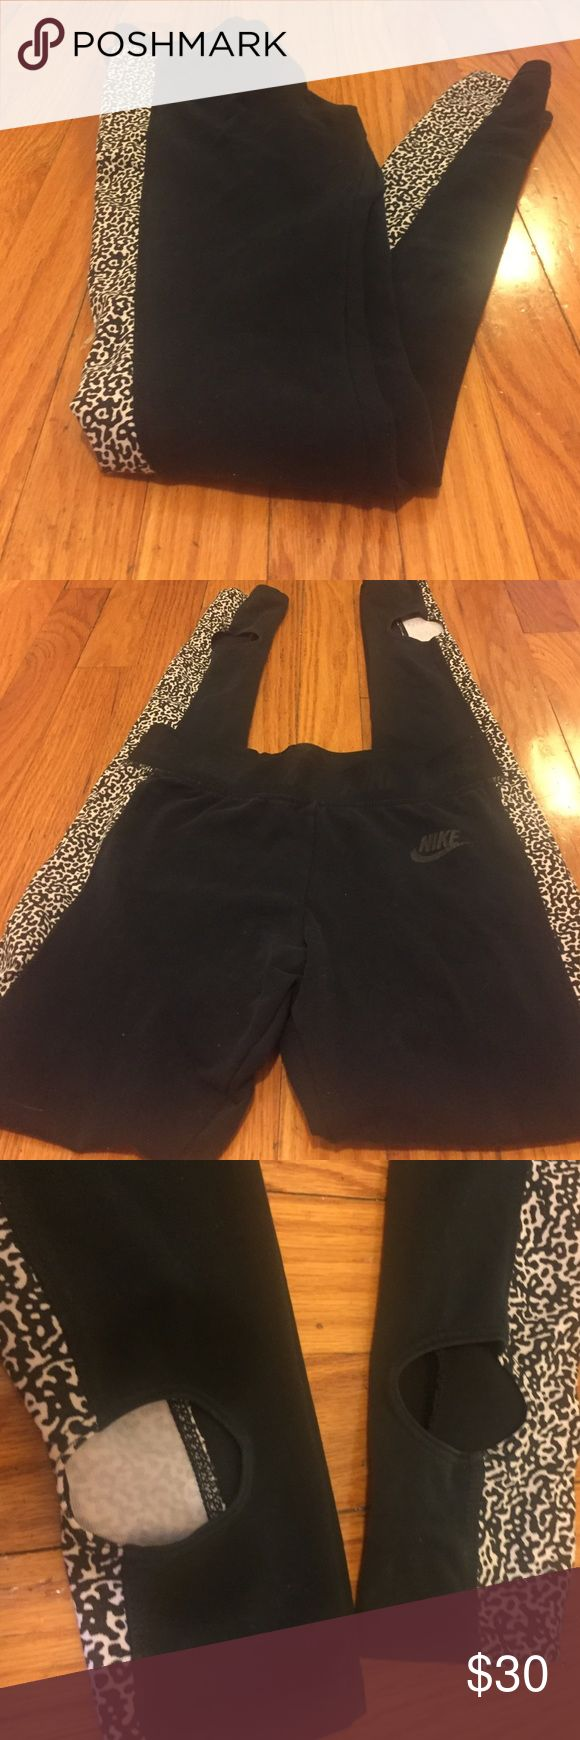 Nike Leopard Print Stirrup Workout Legging 💕 Adorable Nike workout legging. They are stirrup style. Very comfortable and great for dance class or everyday. Nike Pants Leggings